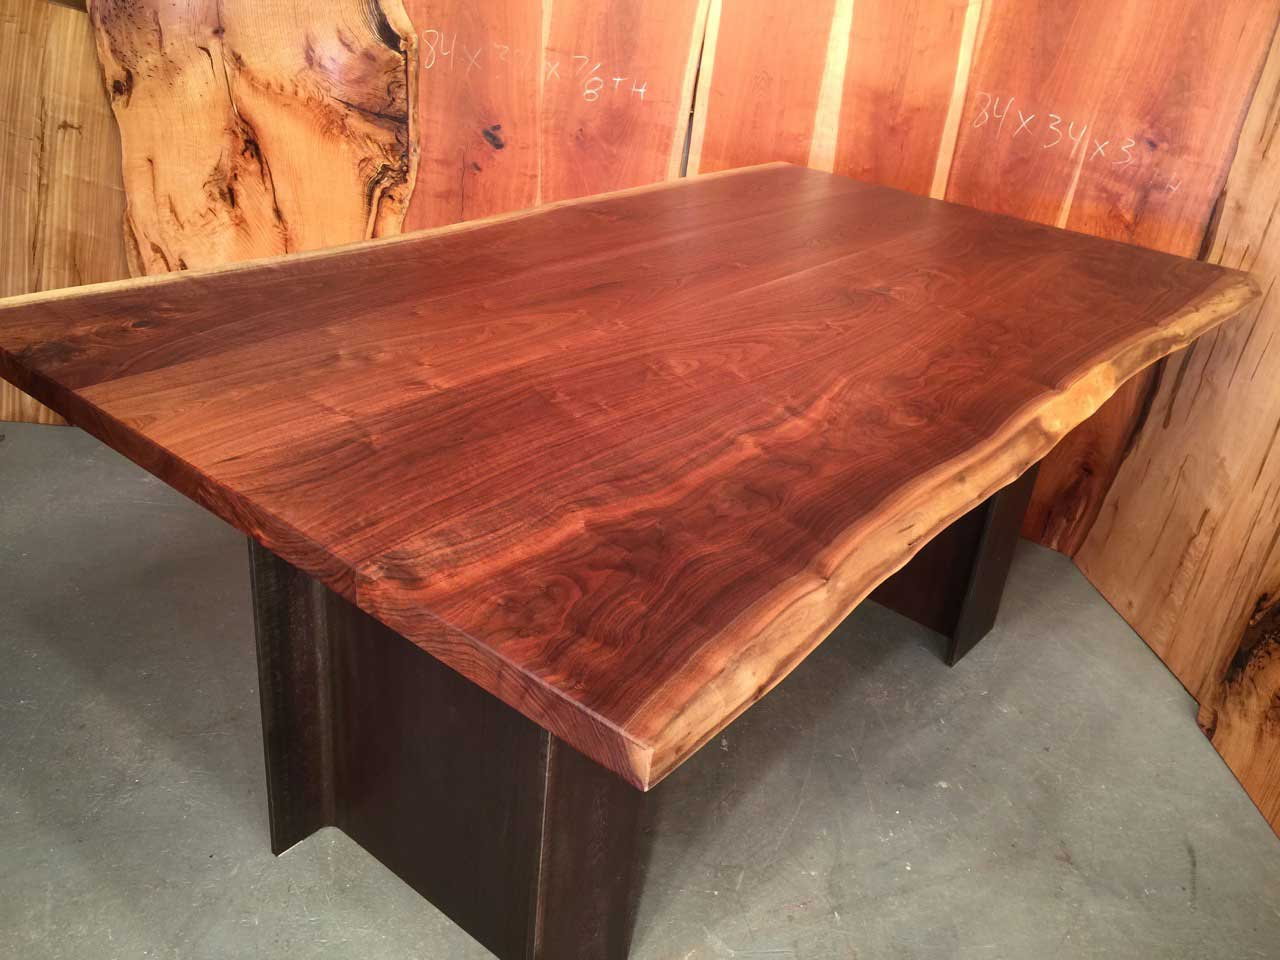 Beautiful live edge walnut top